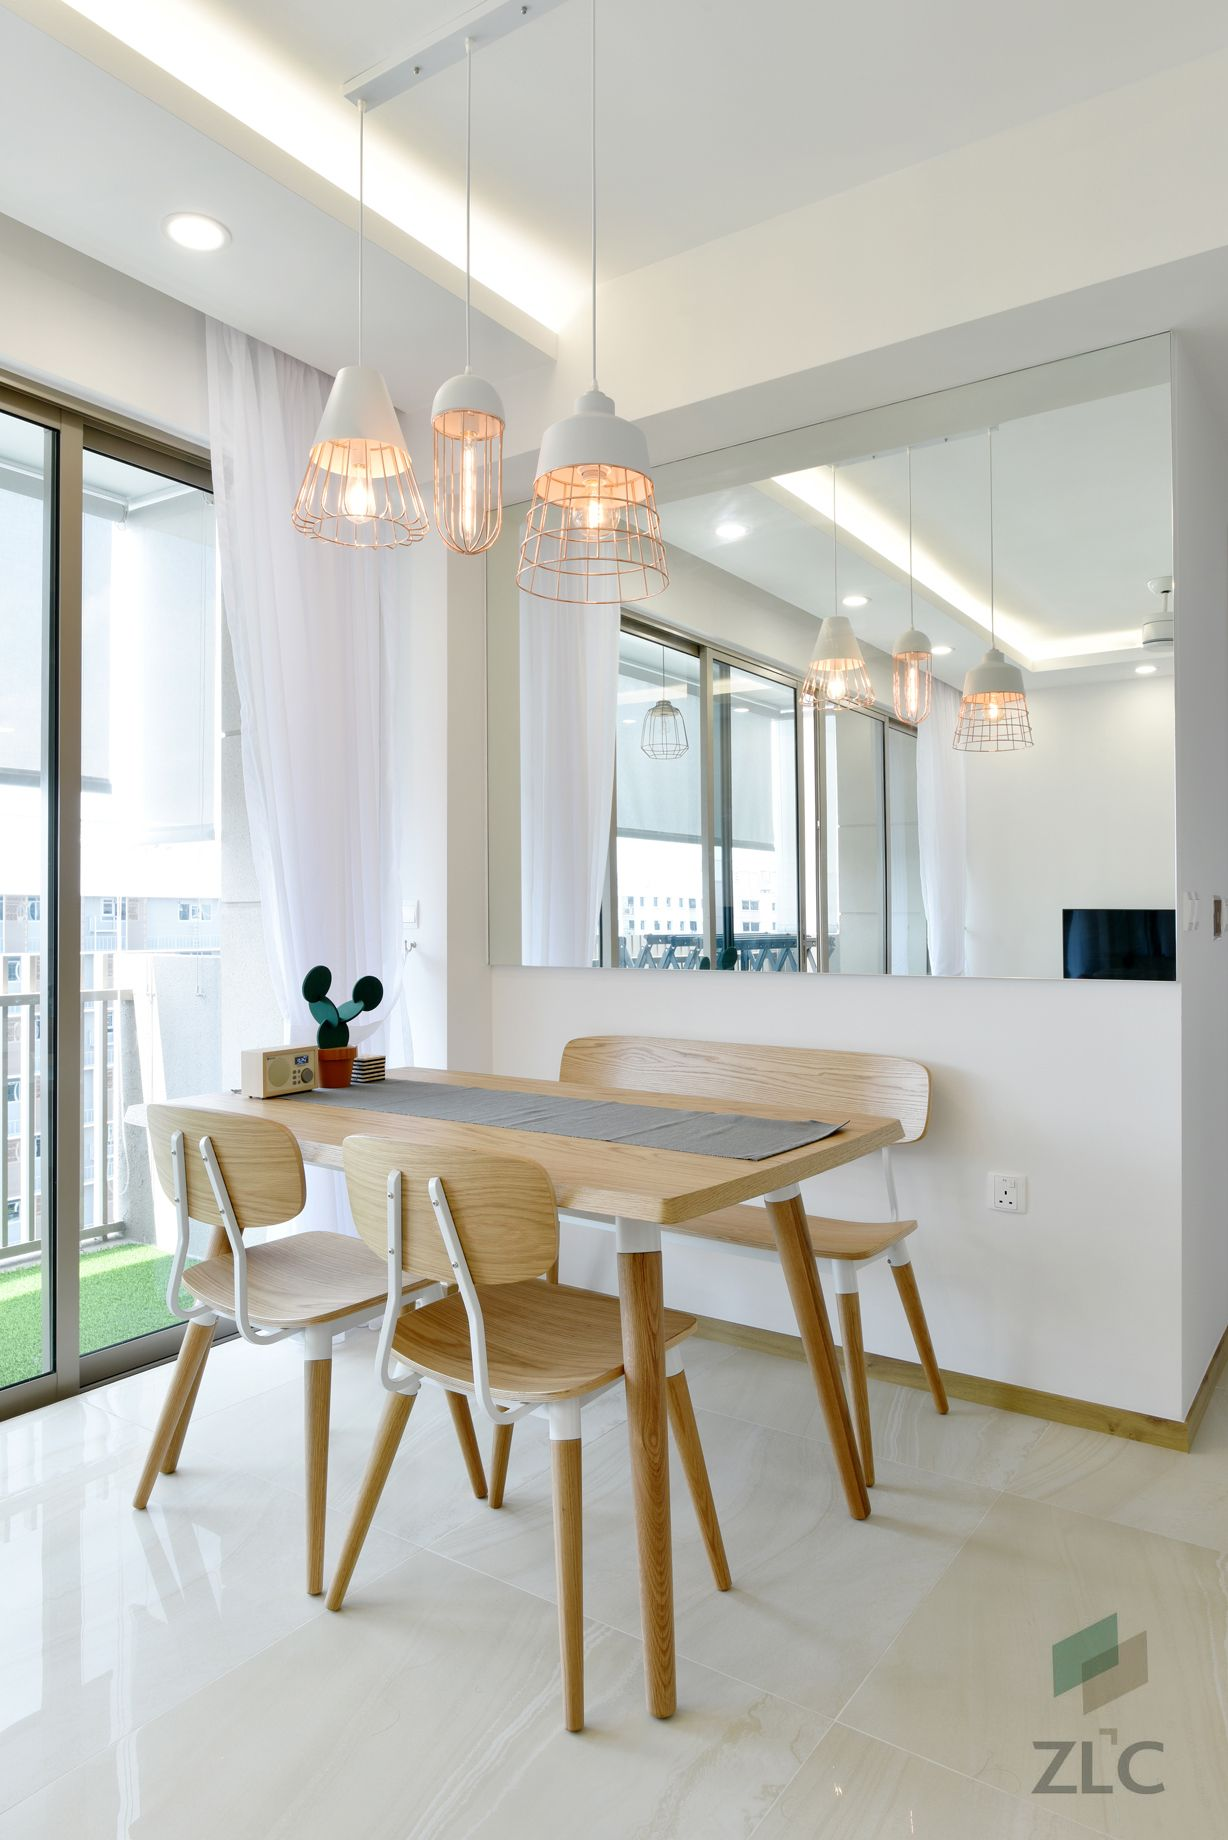 Z L Construction Singapore Trio Pendant Lights In Champagne Coated Finish Customized Mirror Wall Cladding Renovations Cove Lighting Renovation Contractor